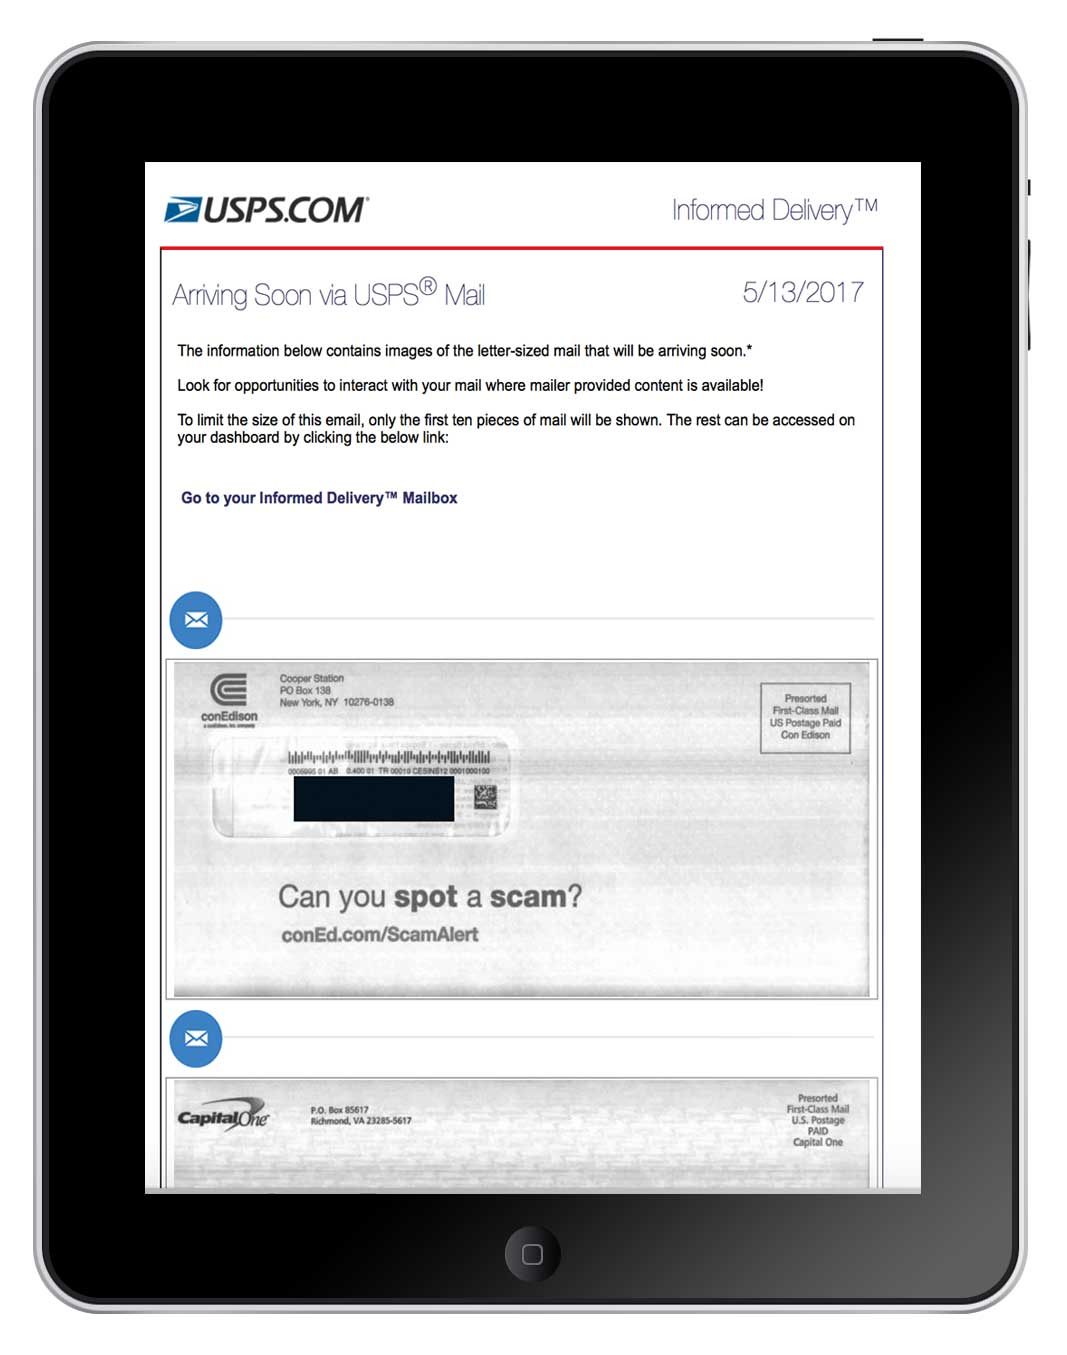 Informed Delivery Inbox Preview